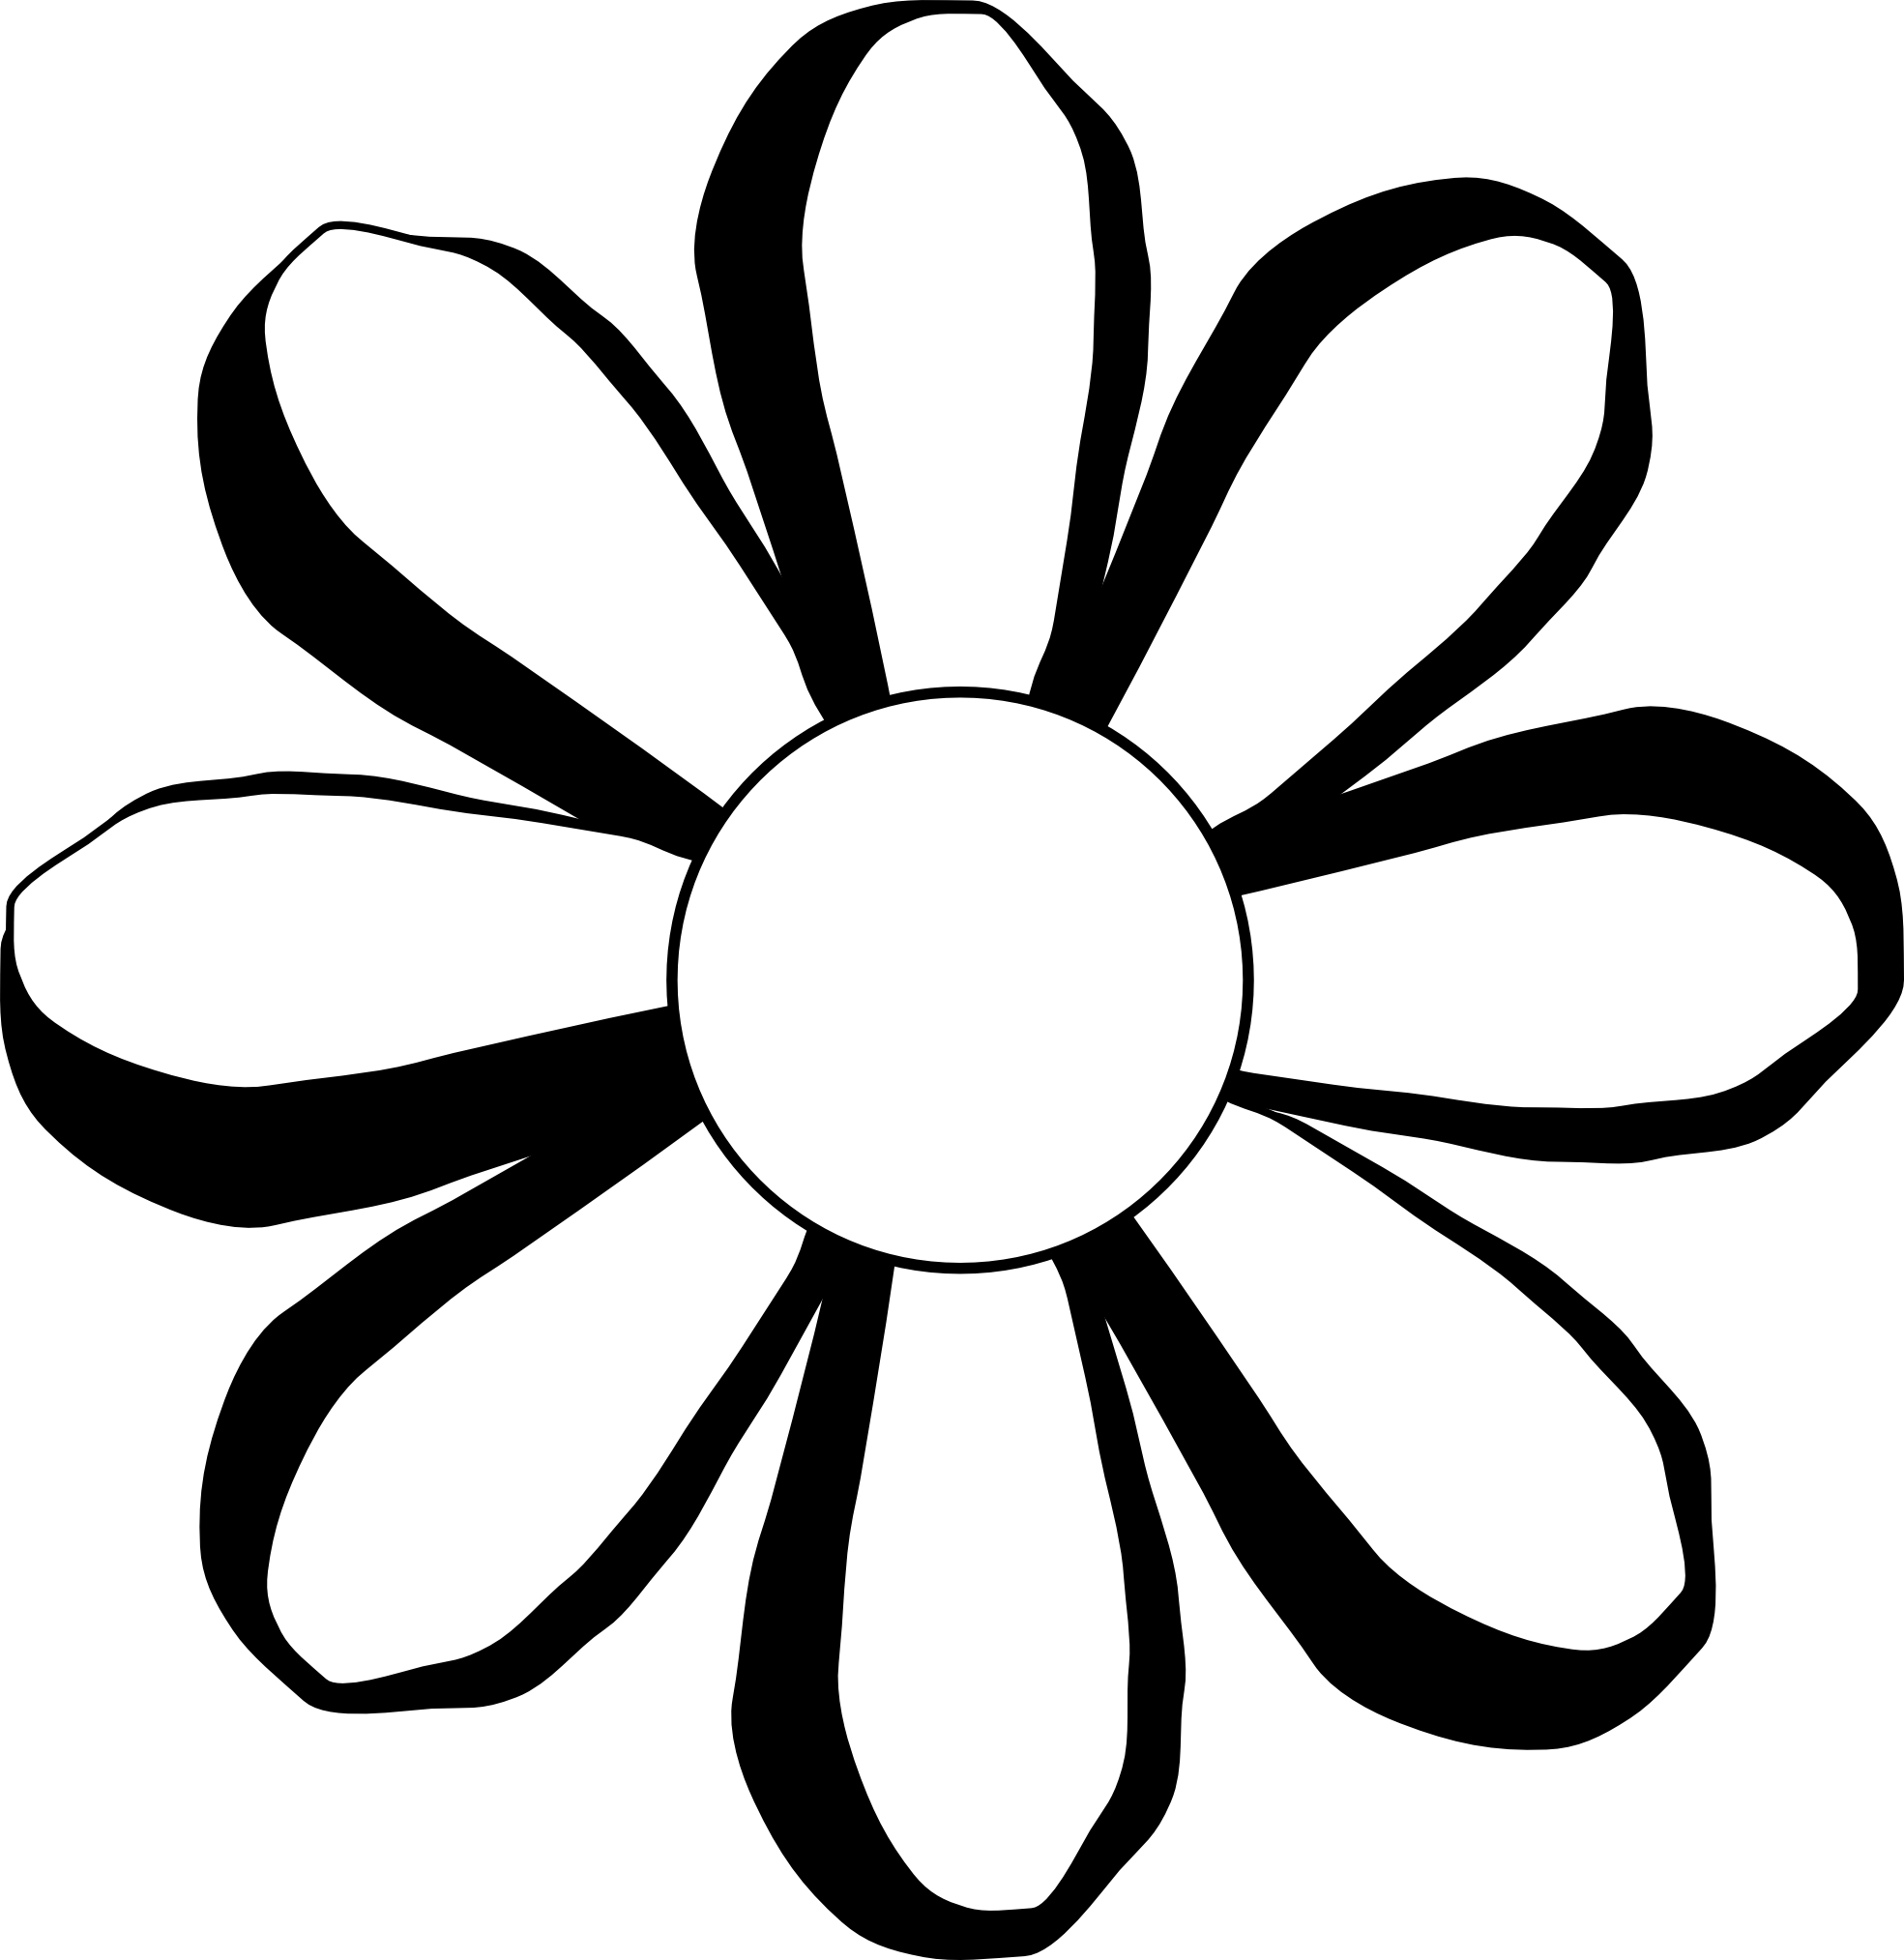 Flower design free download. Germany clipart black and white